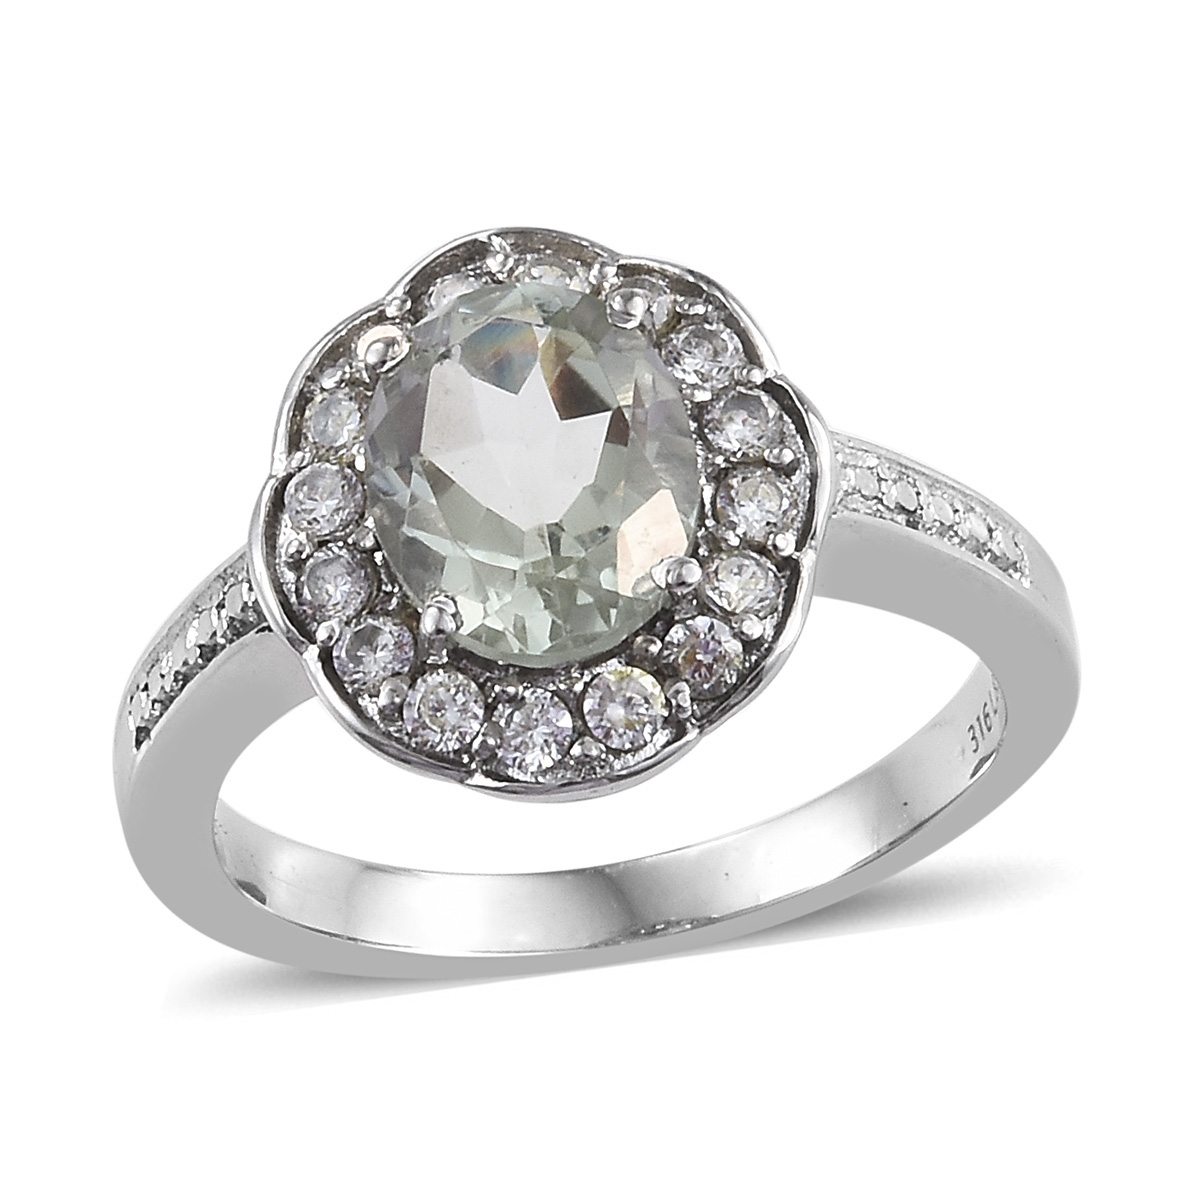 Stainless Steel Oval Green Amethyst, Cubic Zirconia Ring Gif